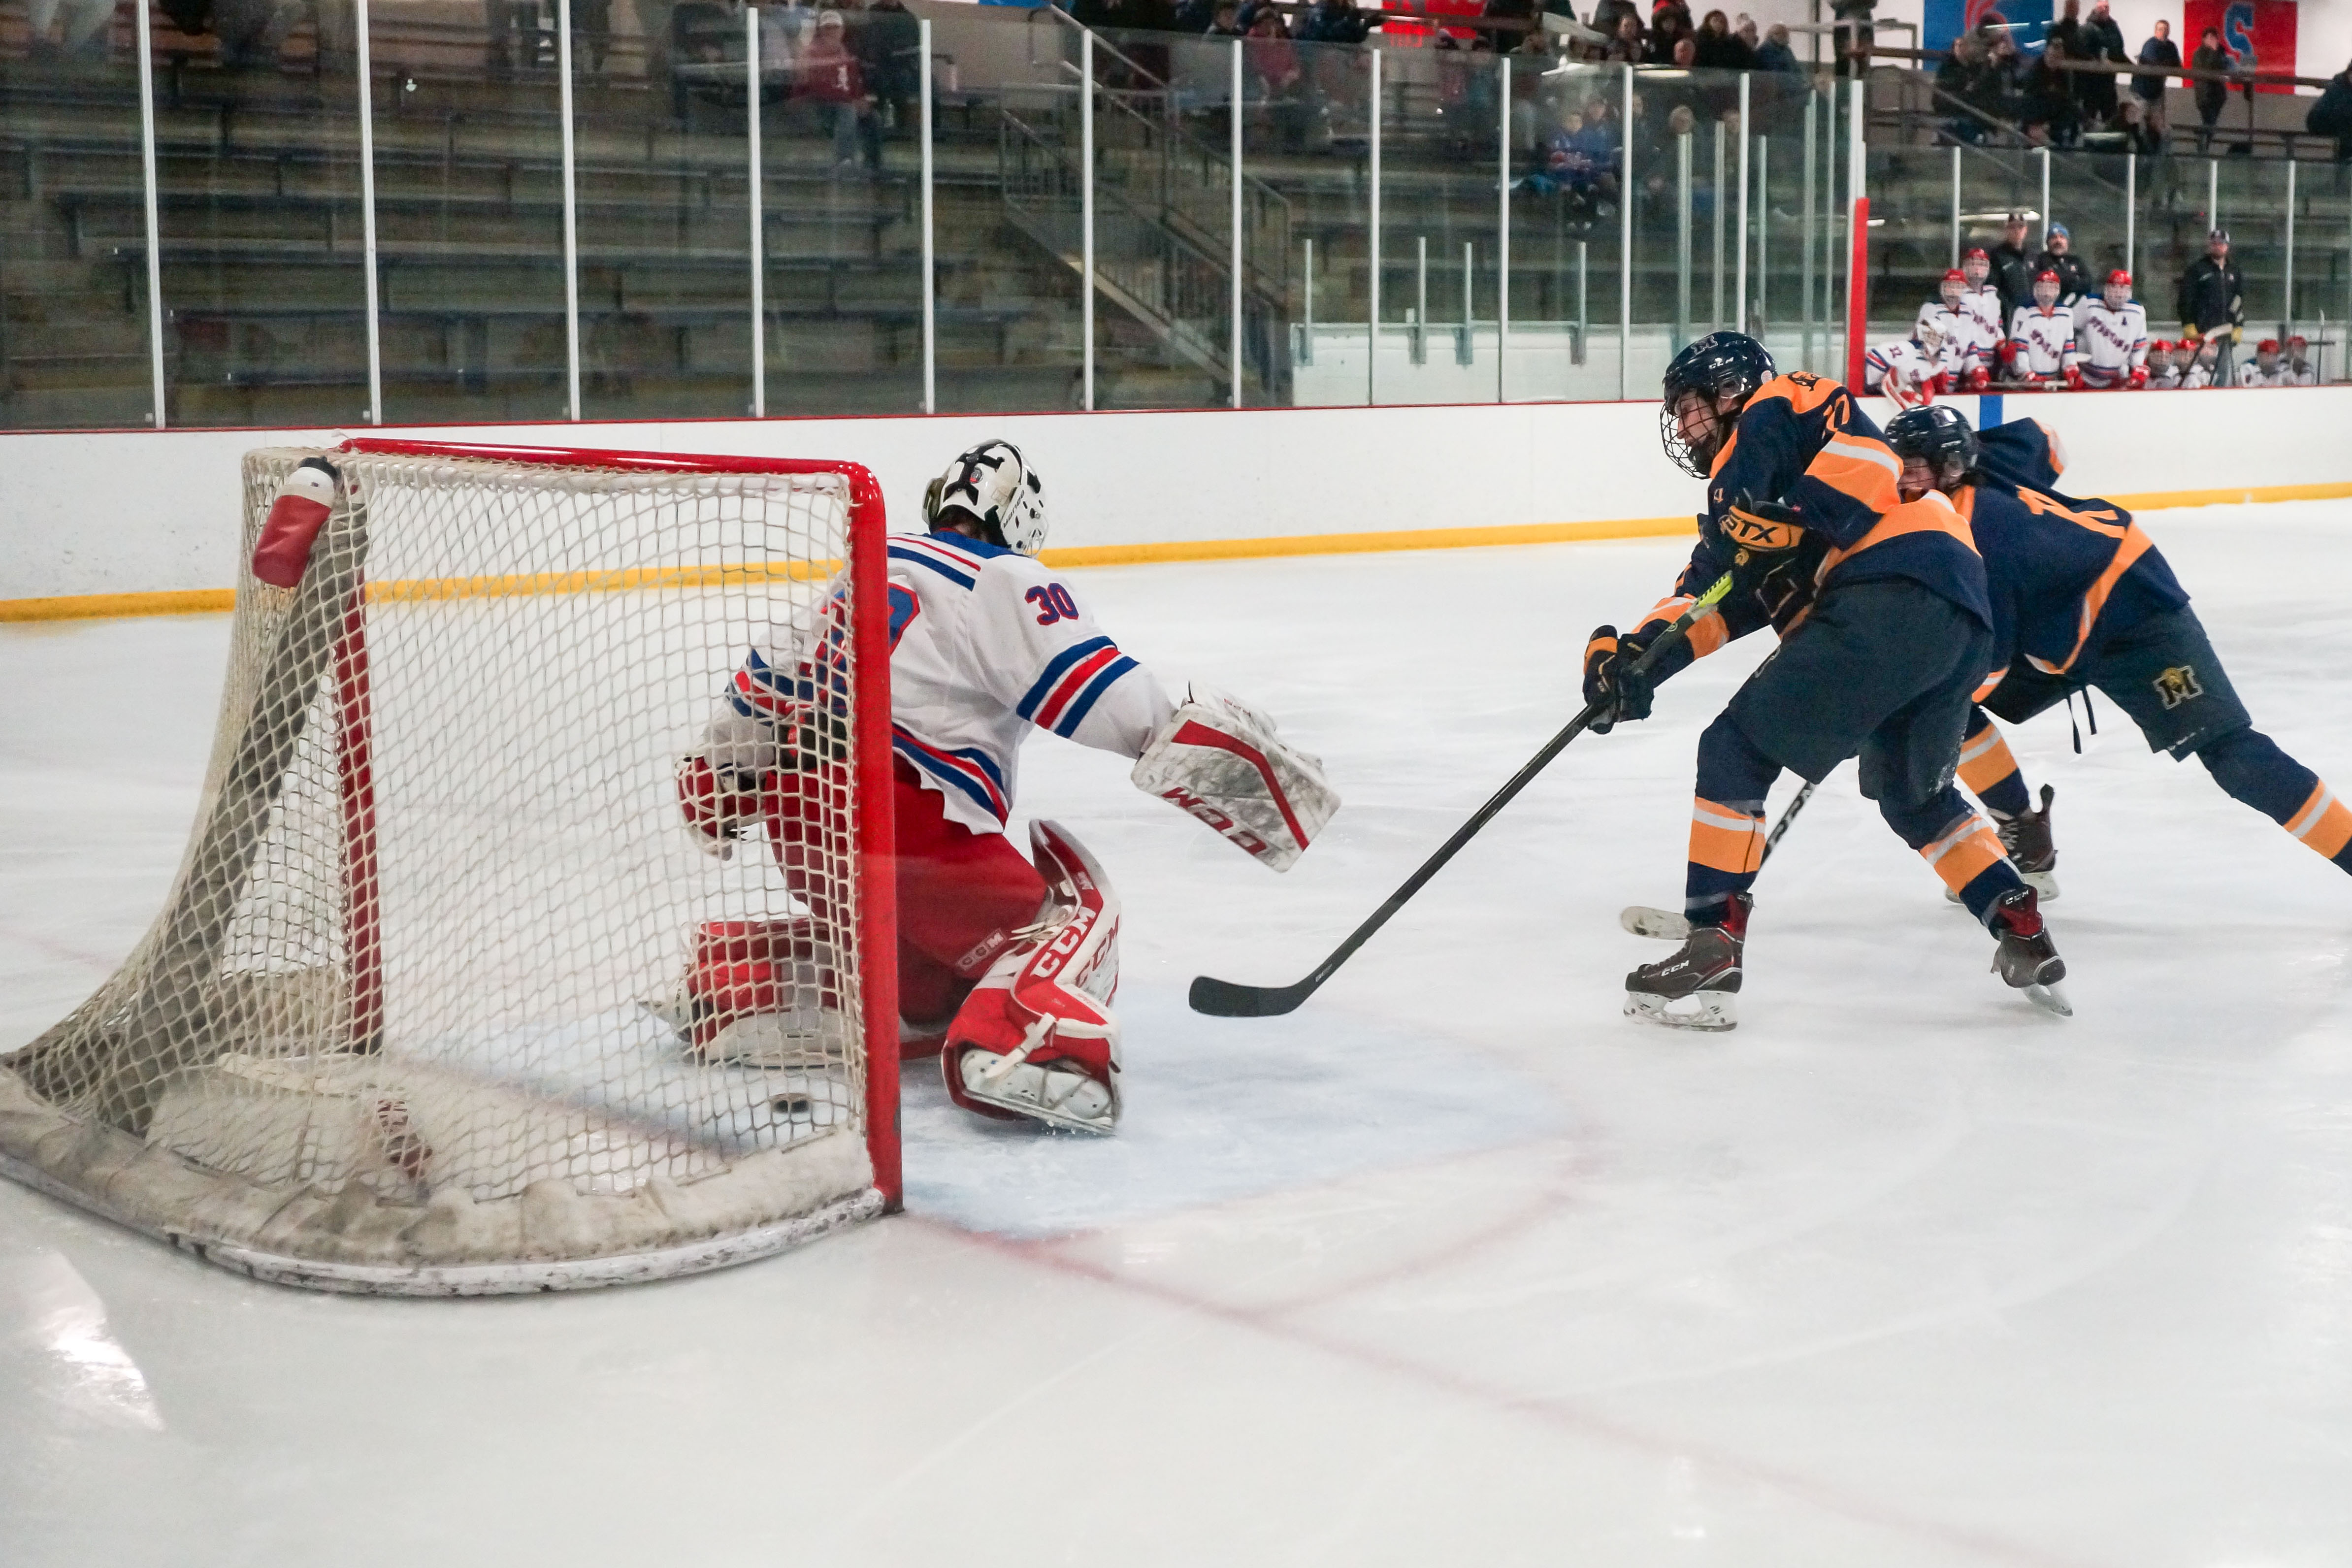 Adam Johnson (10) snuck a rebound past Simley goaltender Hunter Sandnas for the Zephyrs' second goal of the game. Photo by Korey McDermott, SportsEngine